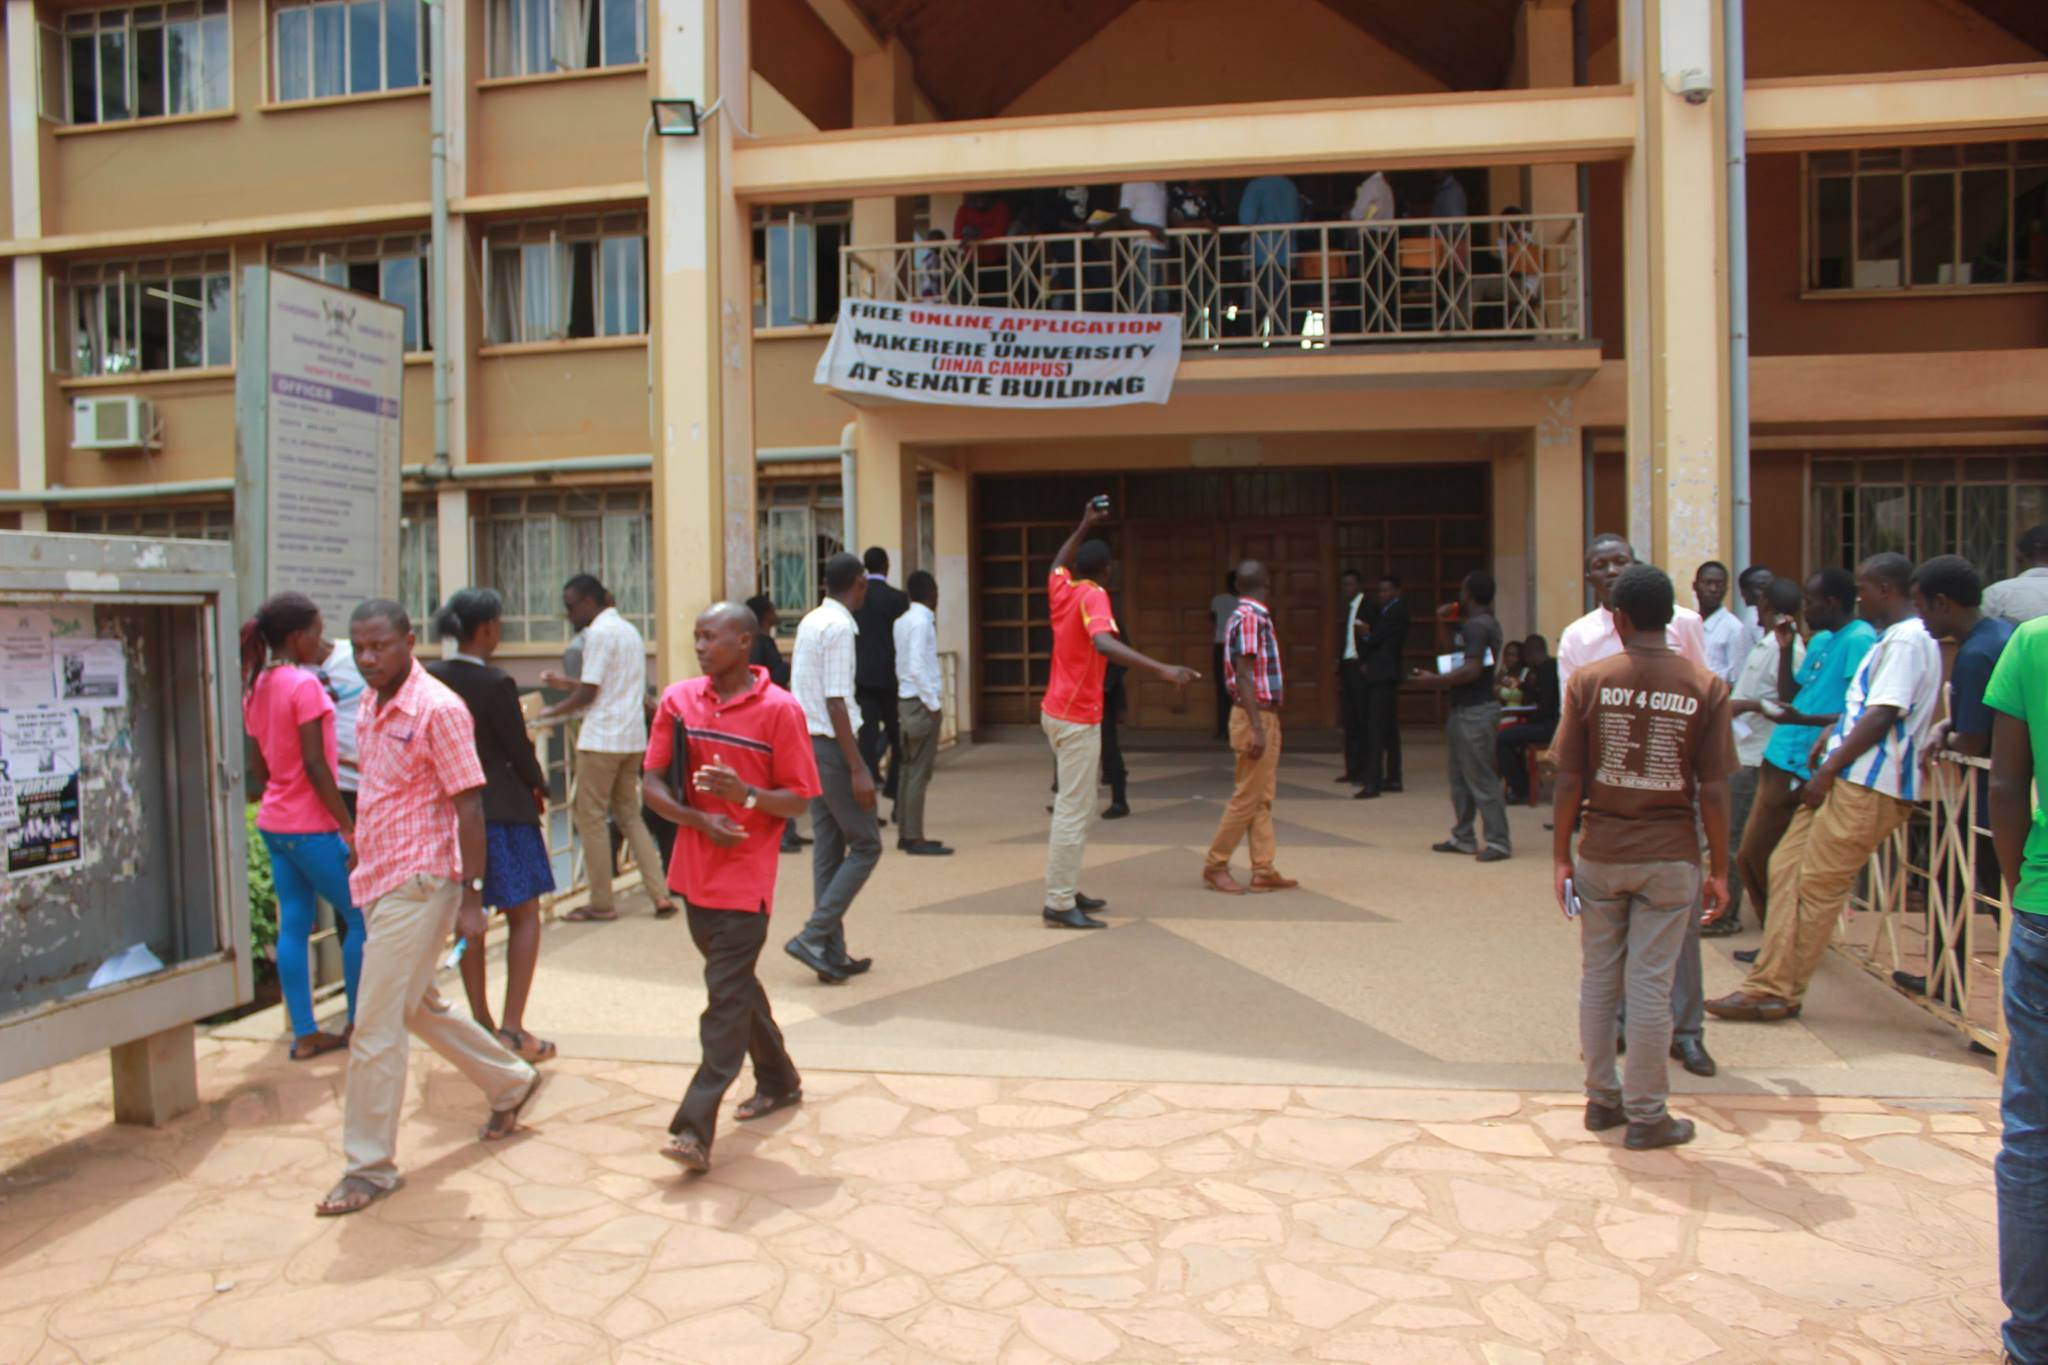 Mwotta supporters push senate guard, and lock fellow students inside as a form of protest for the delayed court ruling of their candidate.